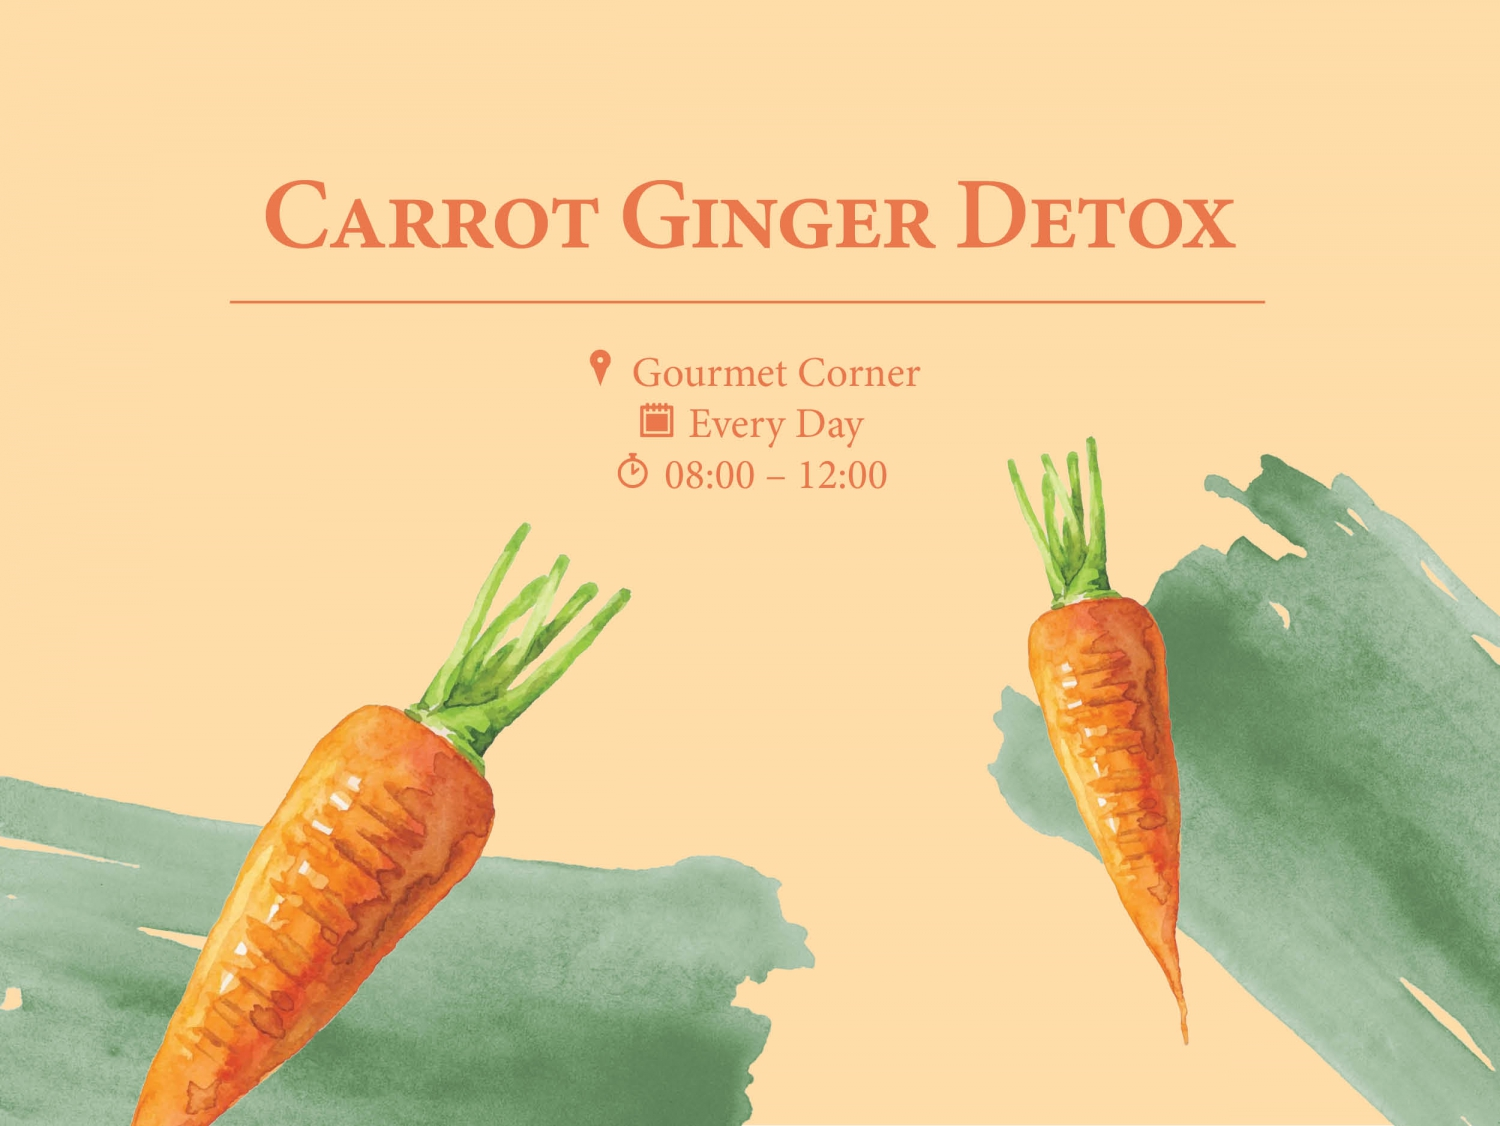 Carrot Ginger Detox